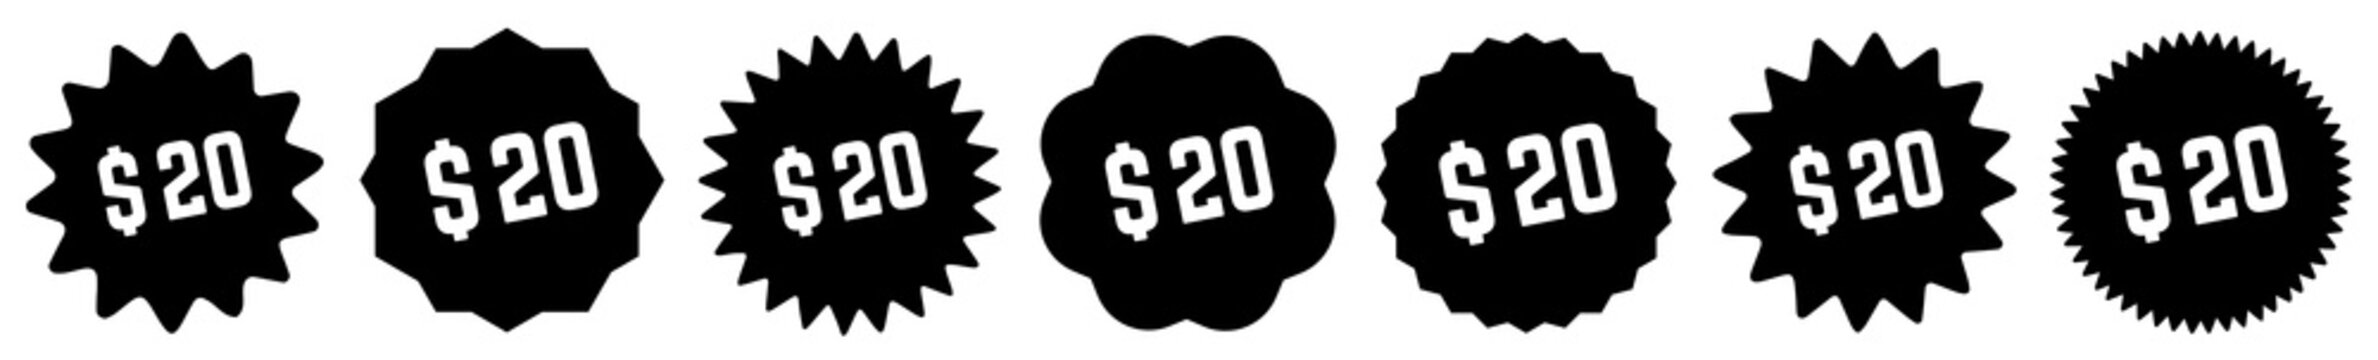 20 Price Tag Black | 20 Dollar | Special Offer Icon | Sale Sticker | Deal Label | Variations